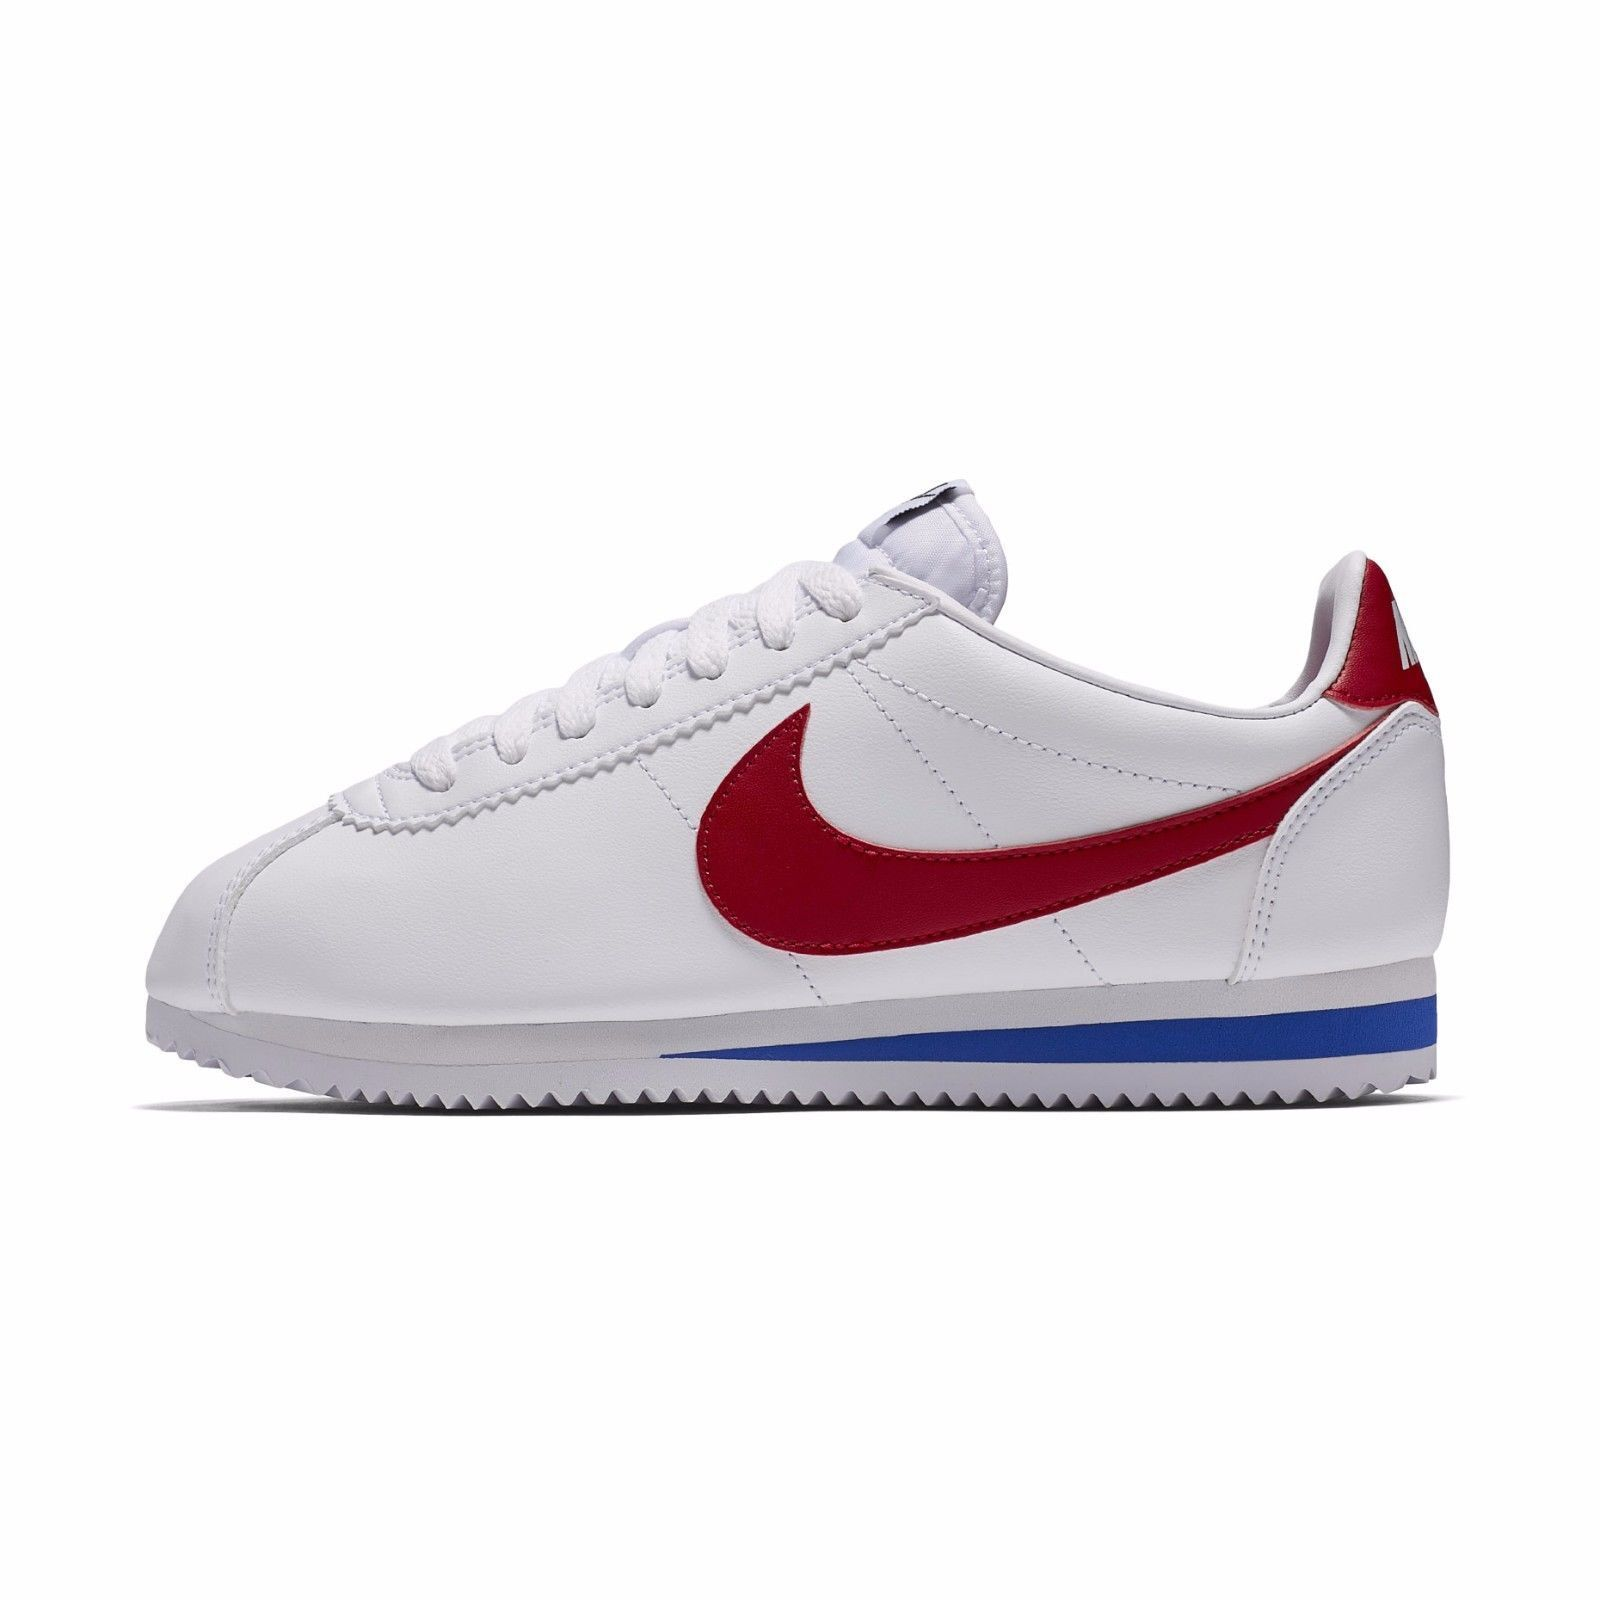 New Nike Women's Classic Cortez Leather Shoes (807471-103)  White//Var Red-Royal